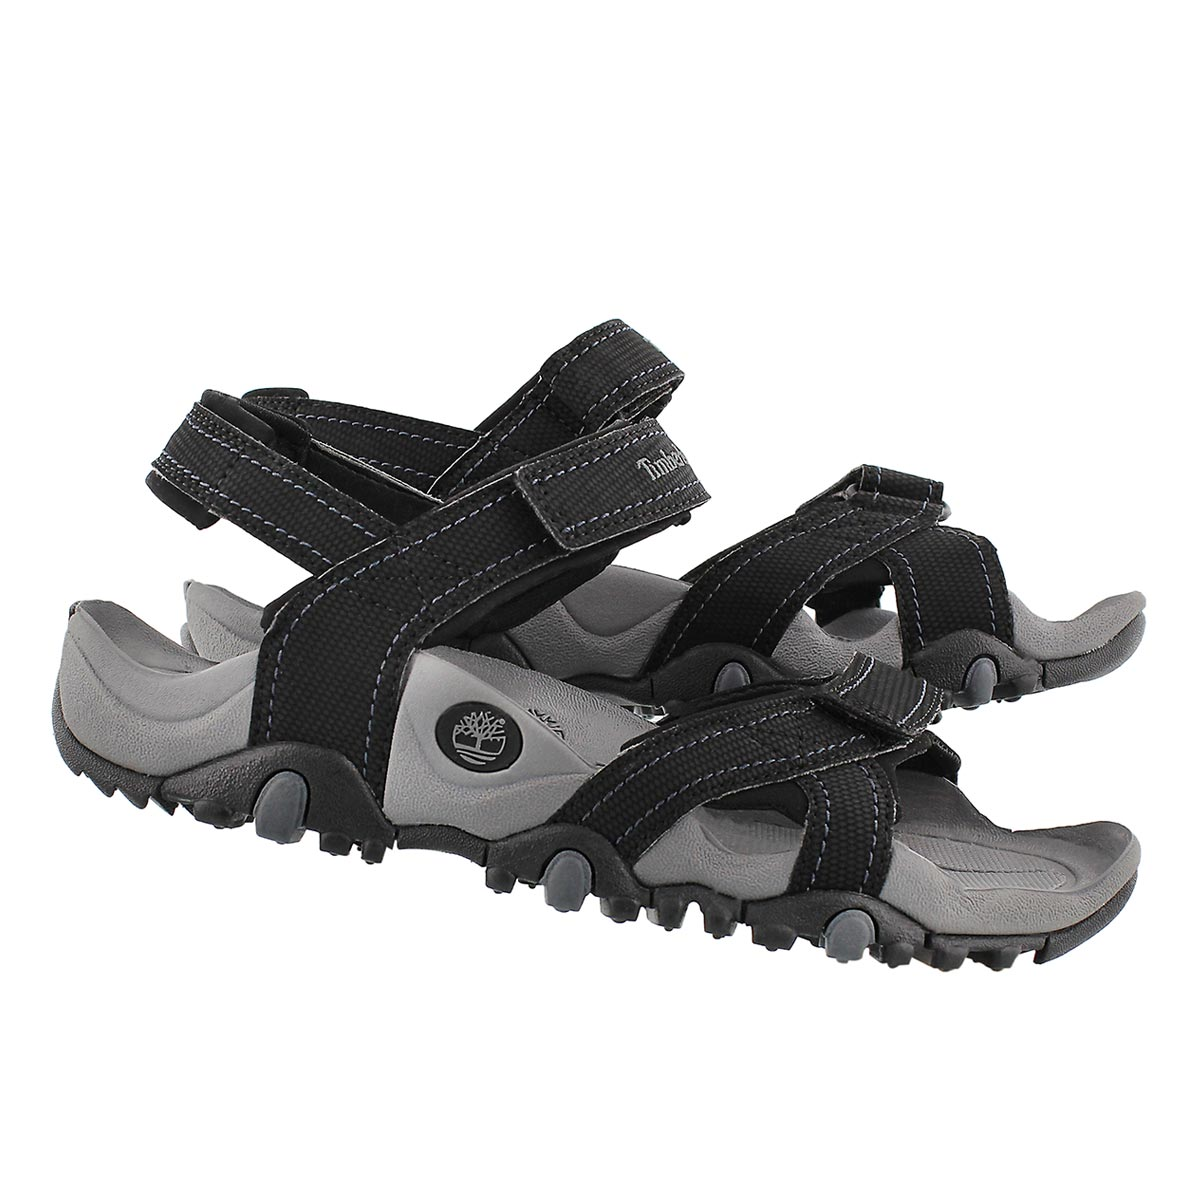 Mns N Granite Trailray blk sport sandal